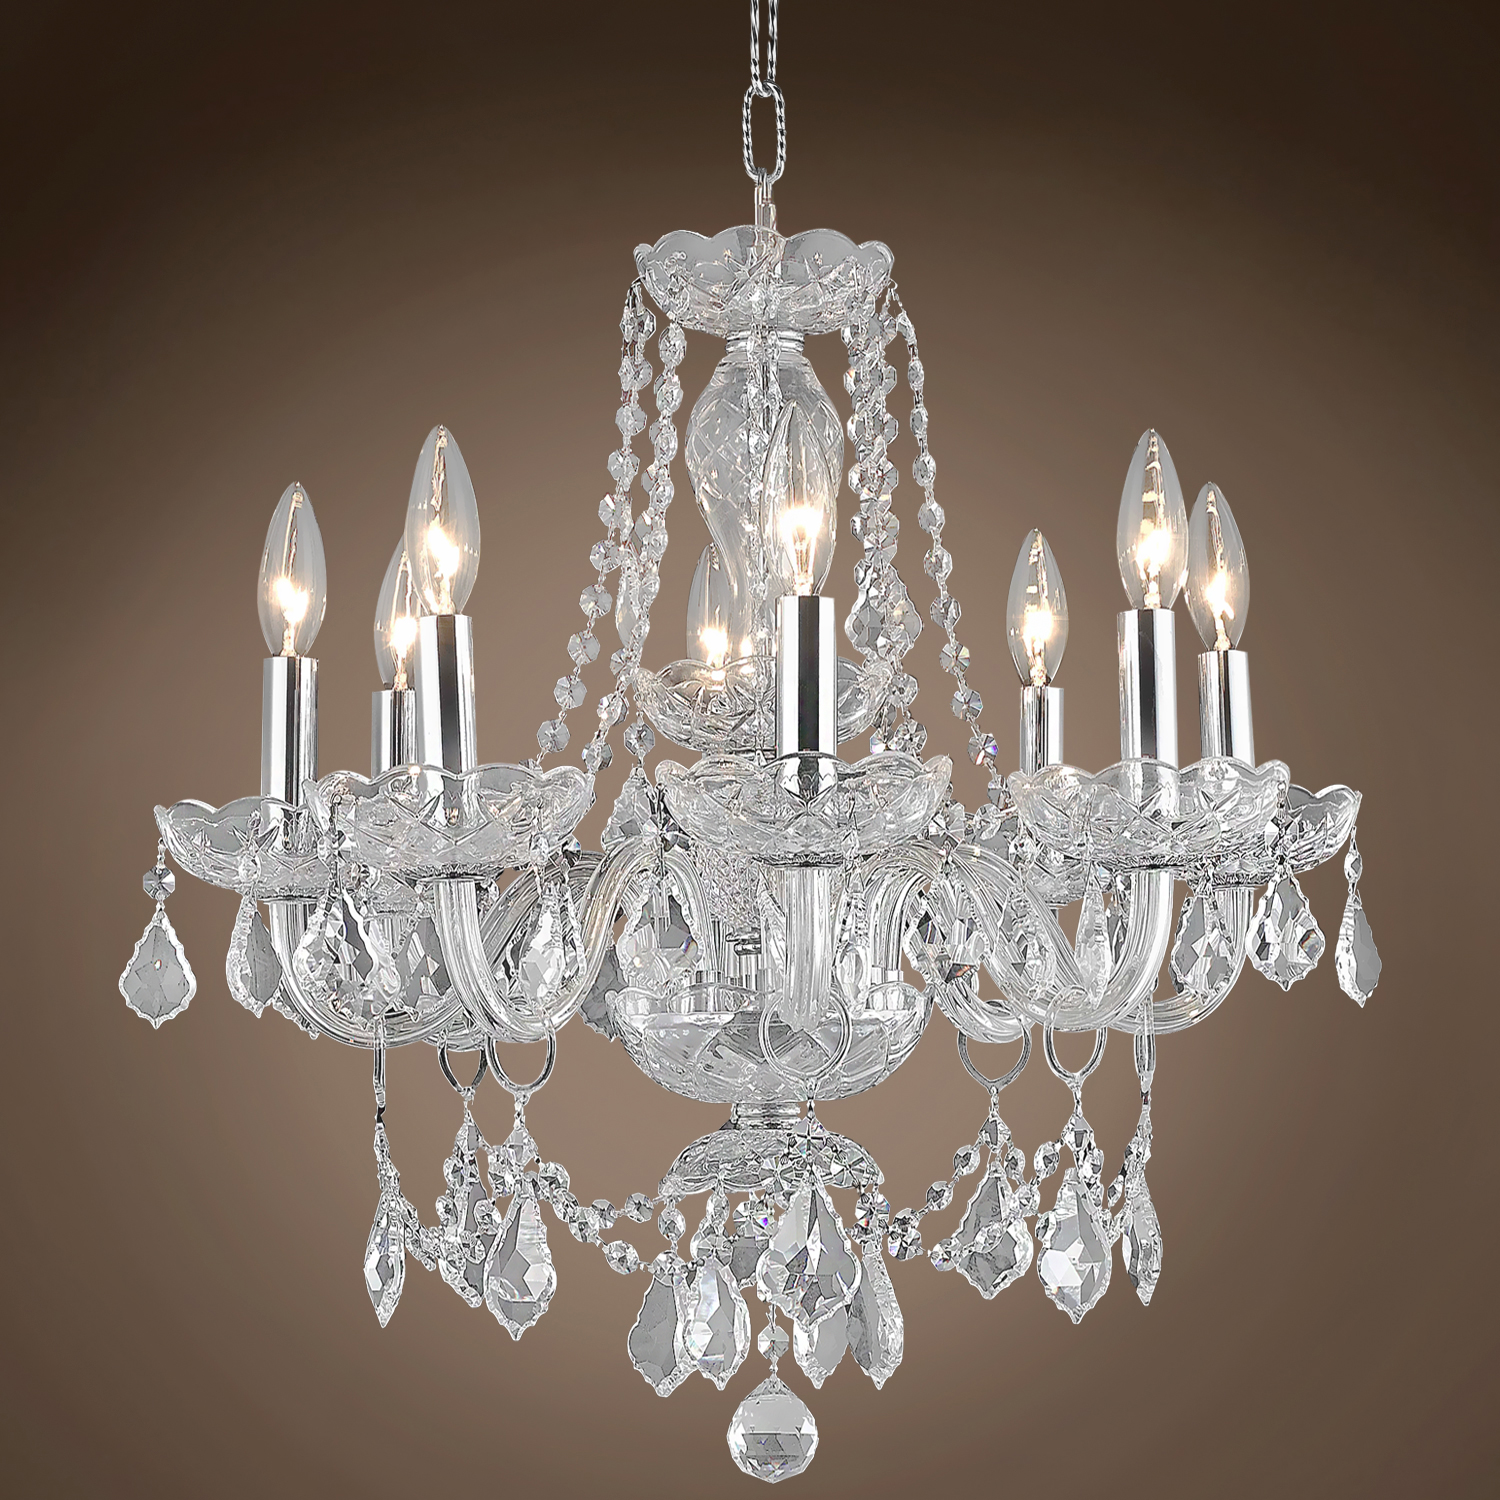 joshua marshal 701337 victorian design 8 light 20 chandelier from victorian collection. Black Bedroom Furniture Sets. Home Design Ideas